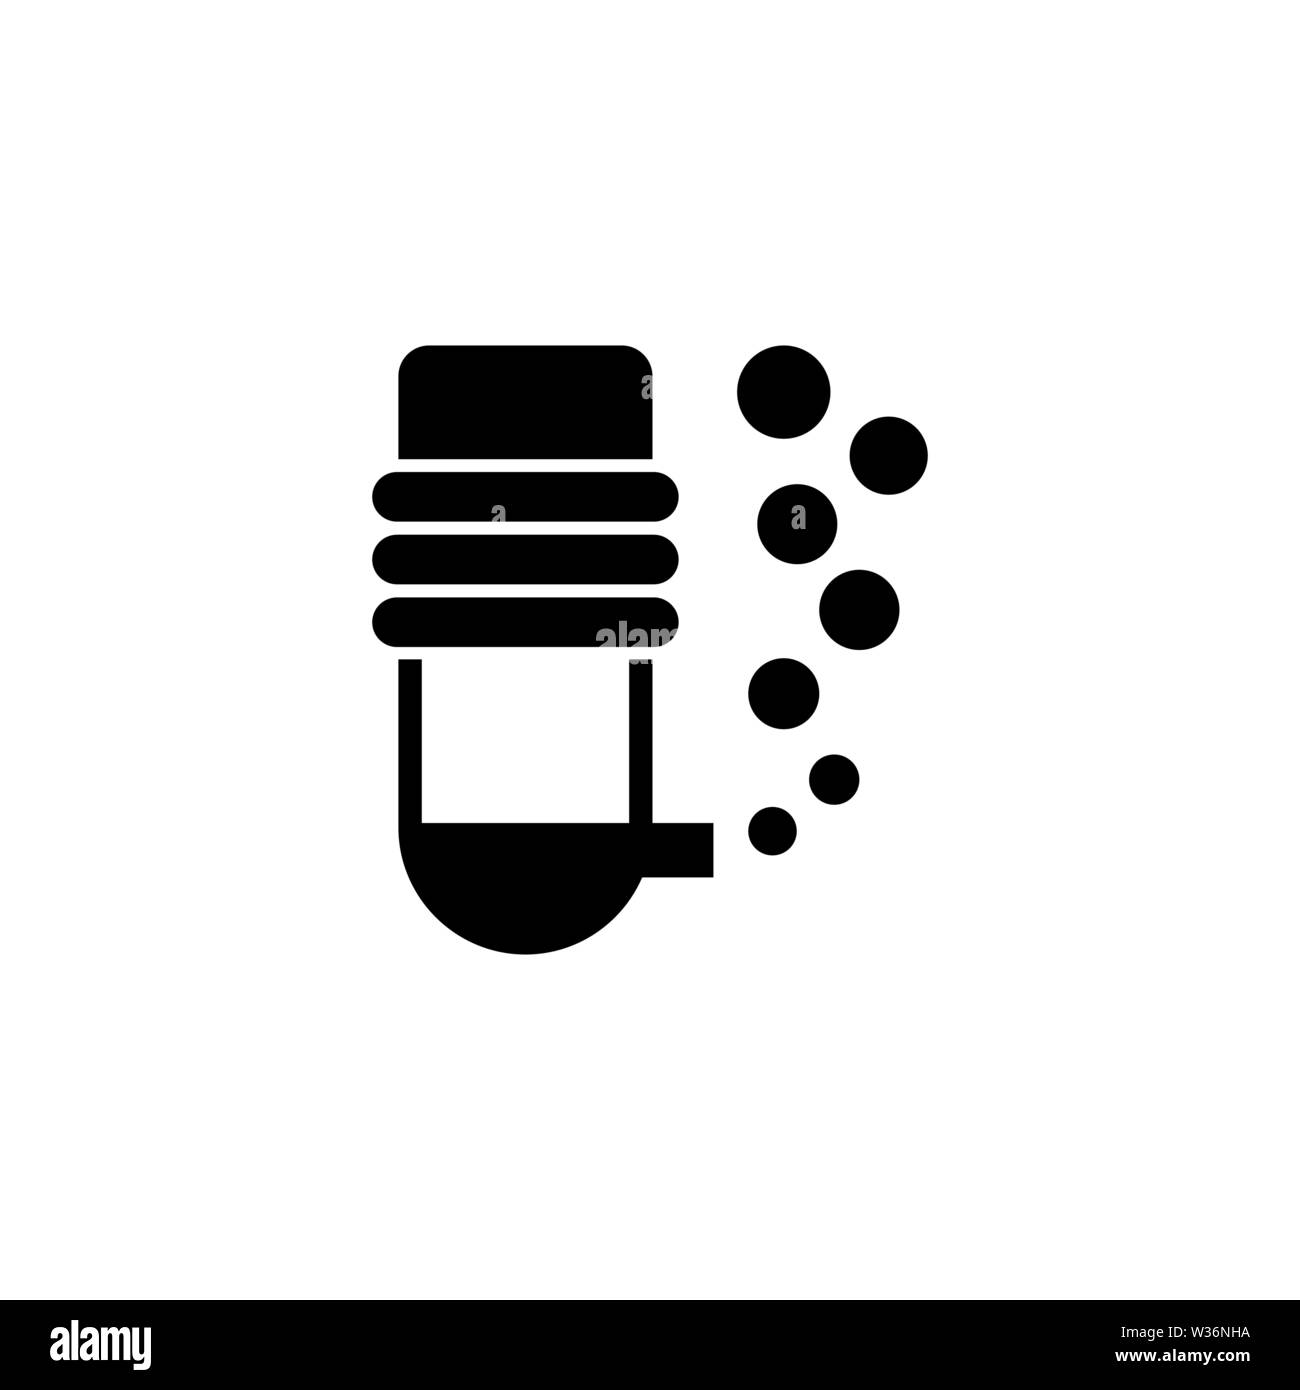 Aquarium oxygen filter vector icon. Simple flat symbol on white background - Stock Image